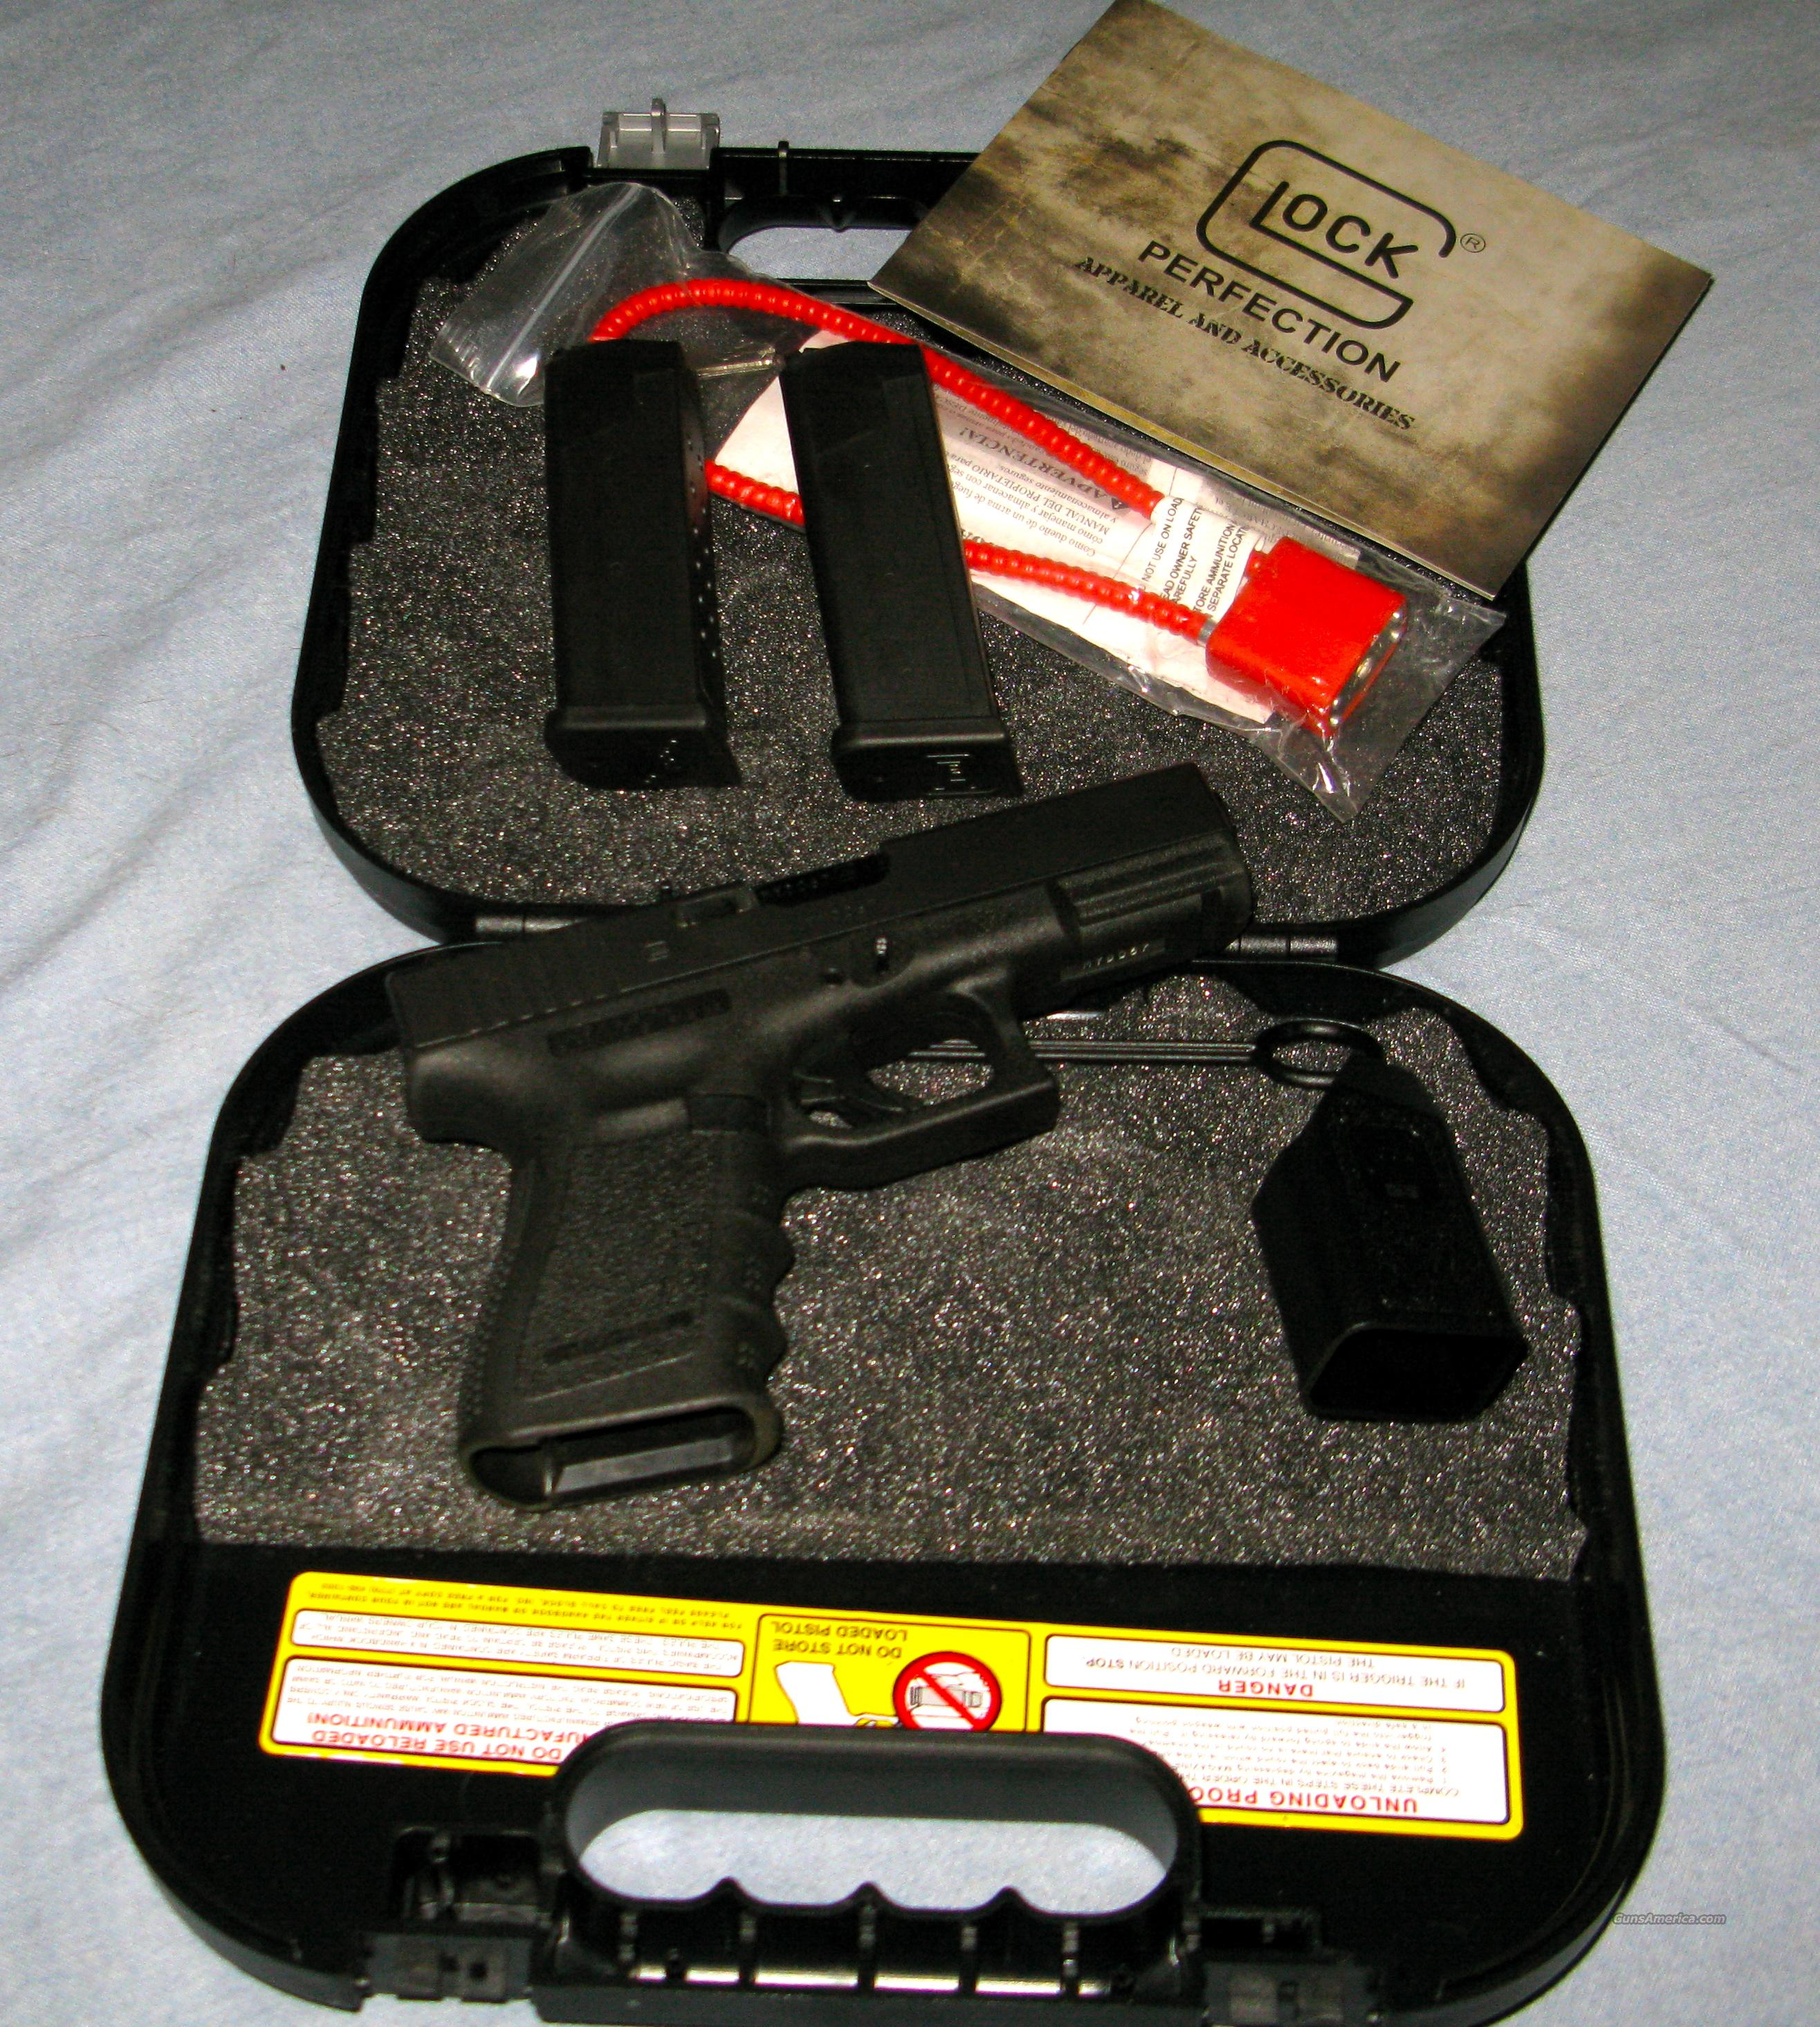 Glock 19 9MM LIKE NEW  Guns > Pistols > Glock Pistols > 19